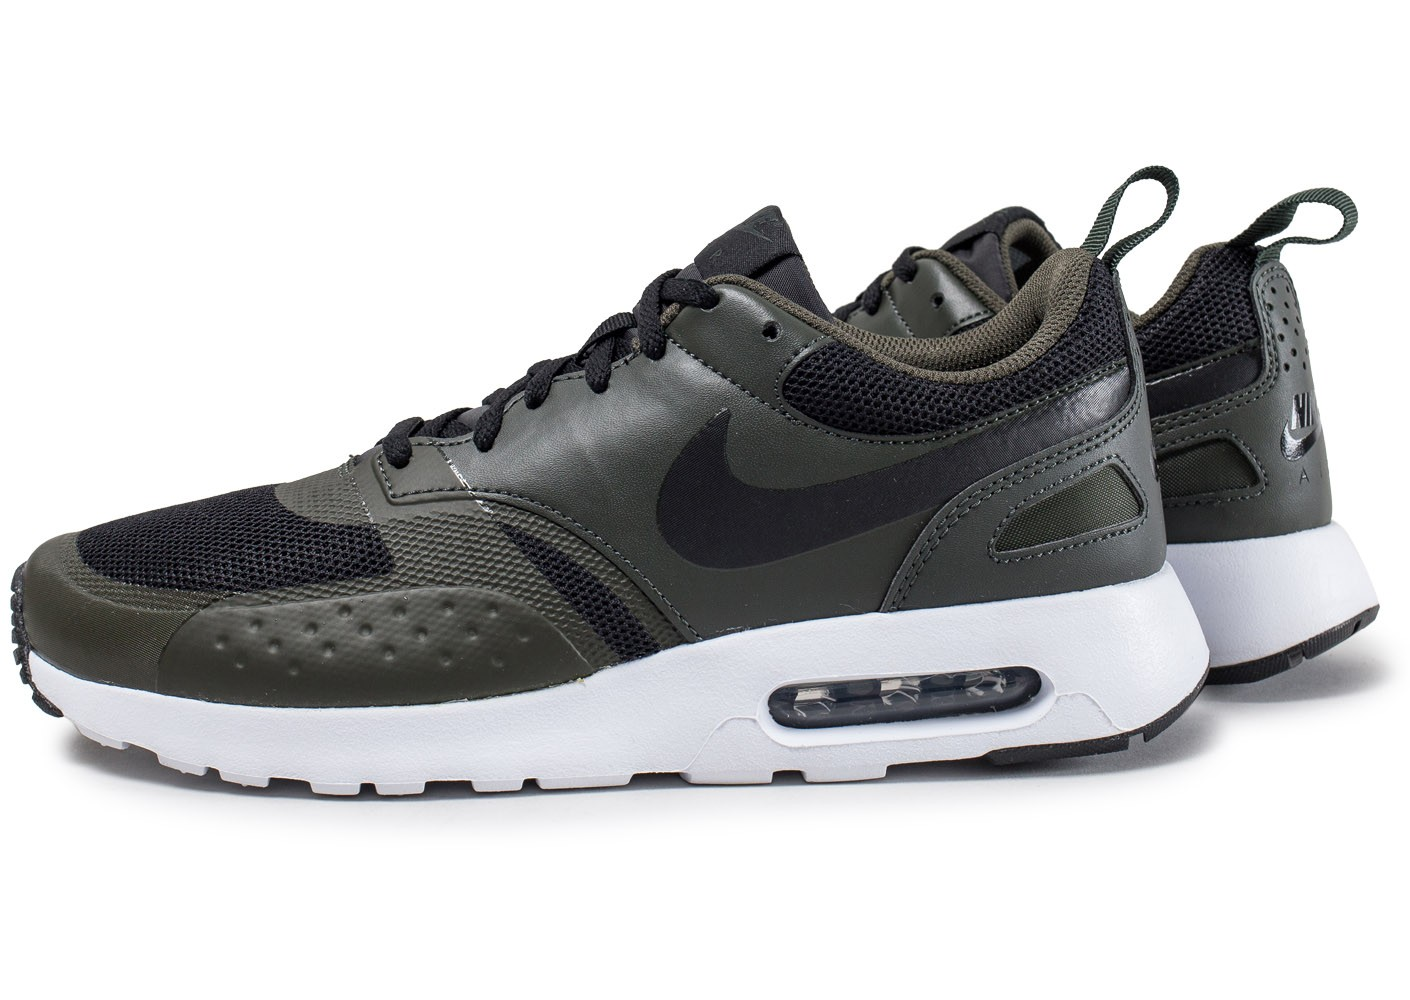 Nike Air Max Vision olive - Chaussures Baskets homme - Chausport